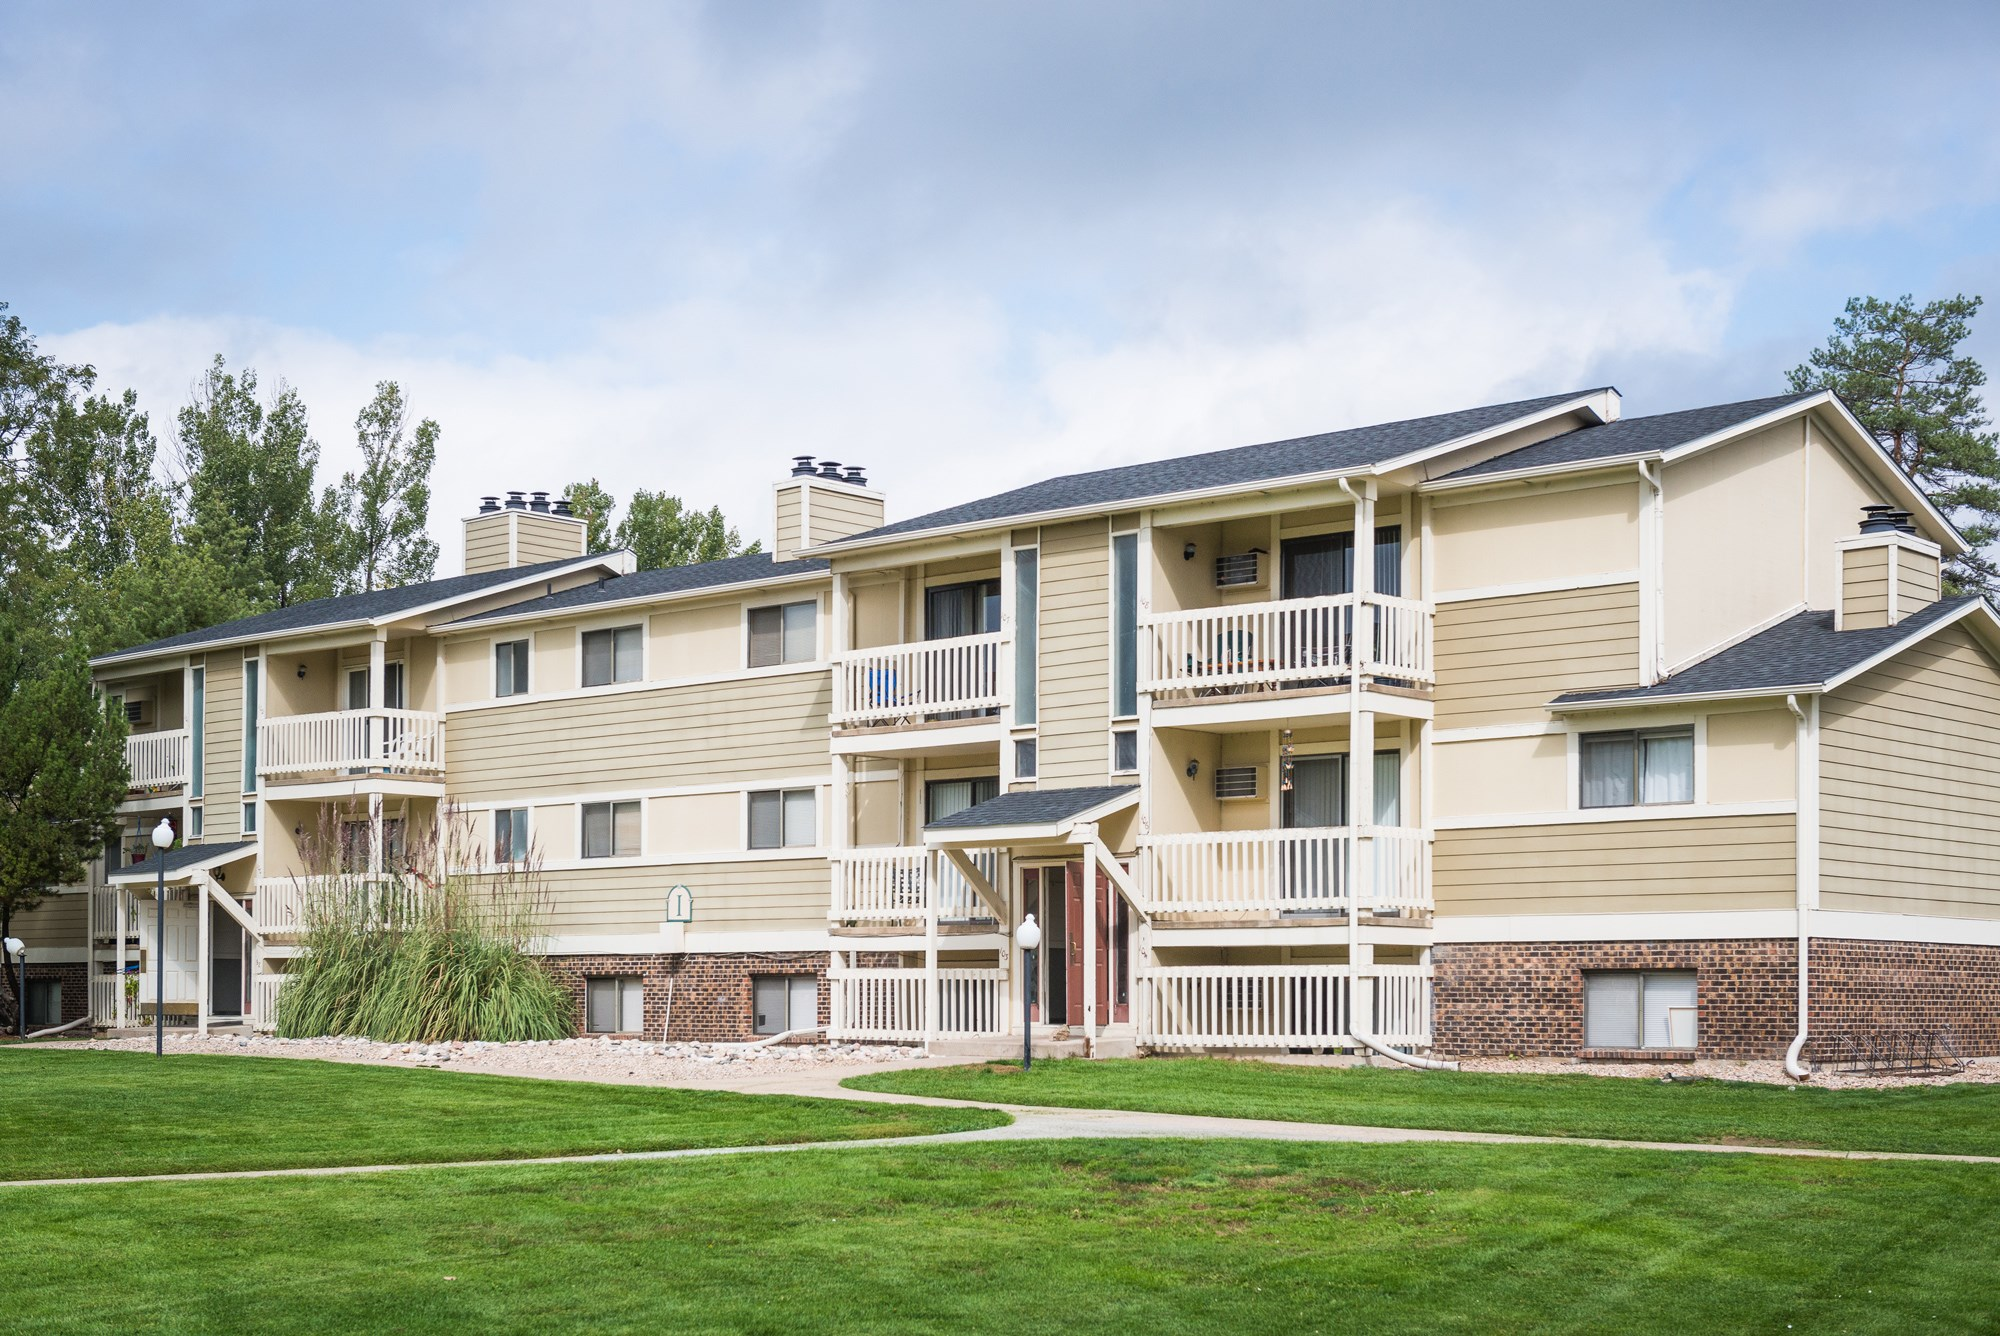 Exterior at Village Gardens Apartments in Fort Collins, CO